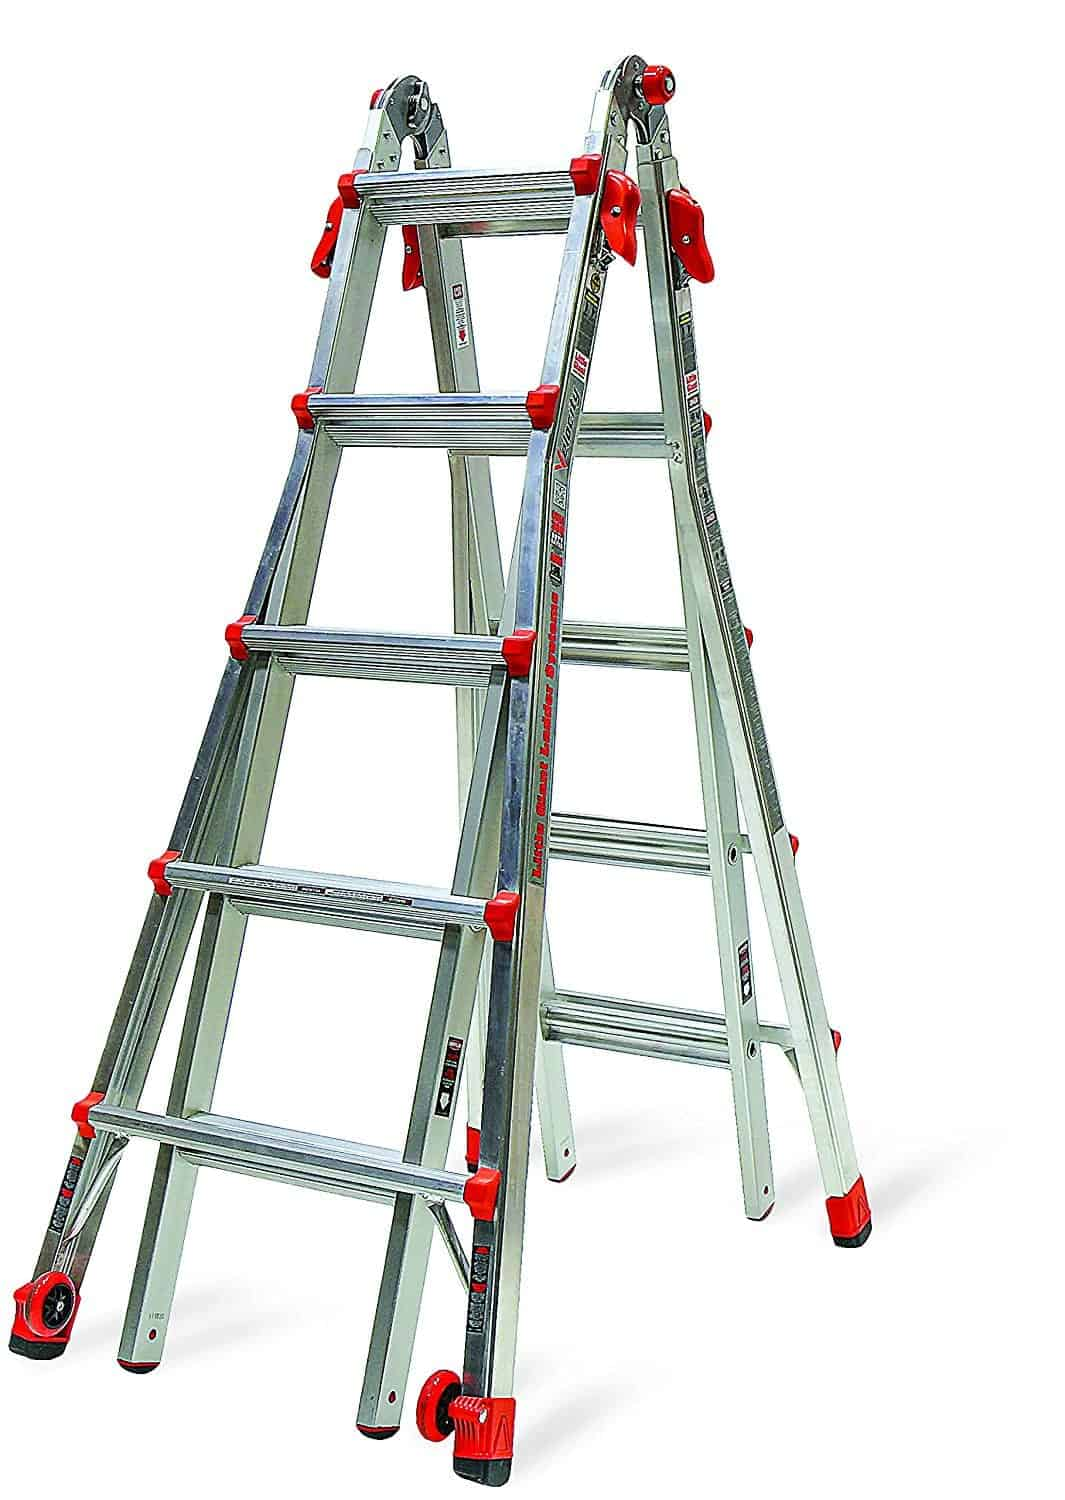 22-foot velocity multi-use ladder with dual pin hinge and wide flared legs.